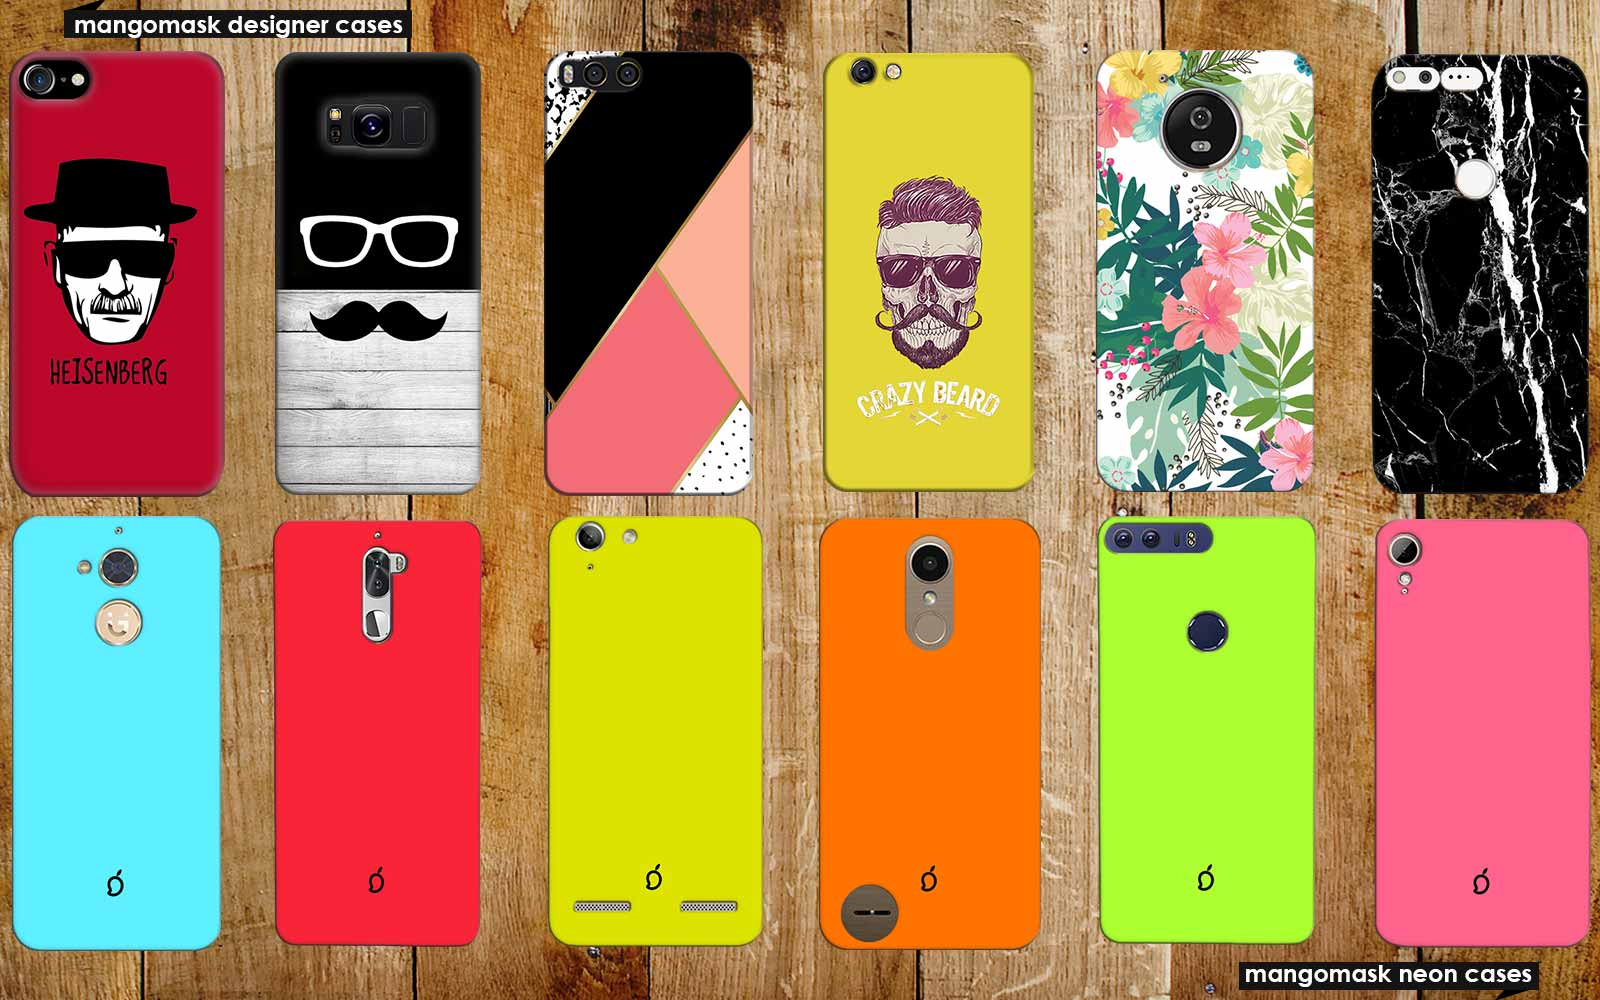 Buy Best Custom Printed Designer Funky Mobile Phone Cases, Flip Back Covers for Lenovo Vibe P1 / P1 Turbo in India at Mangomask.